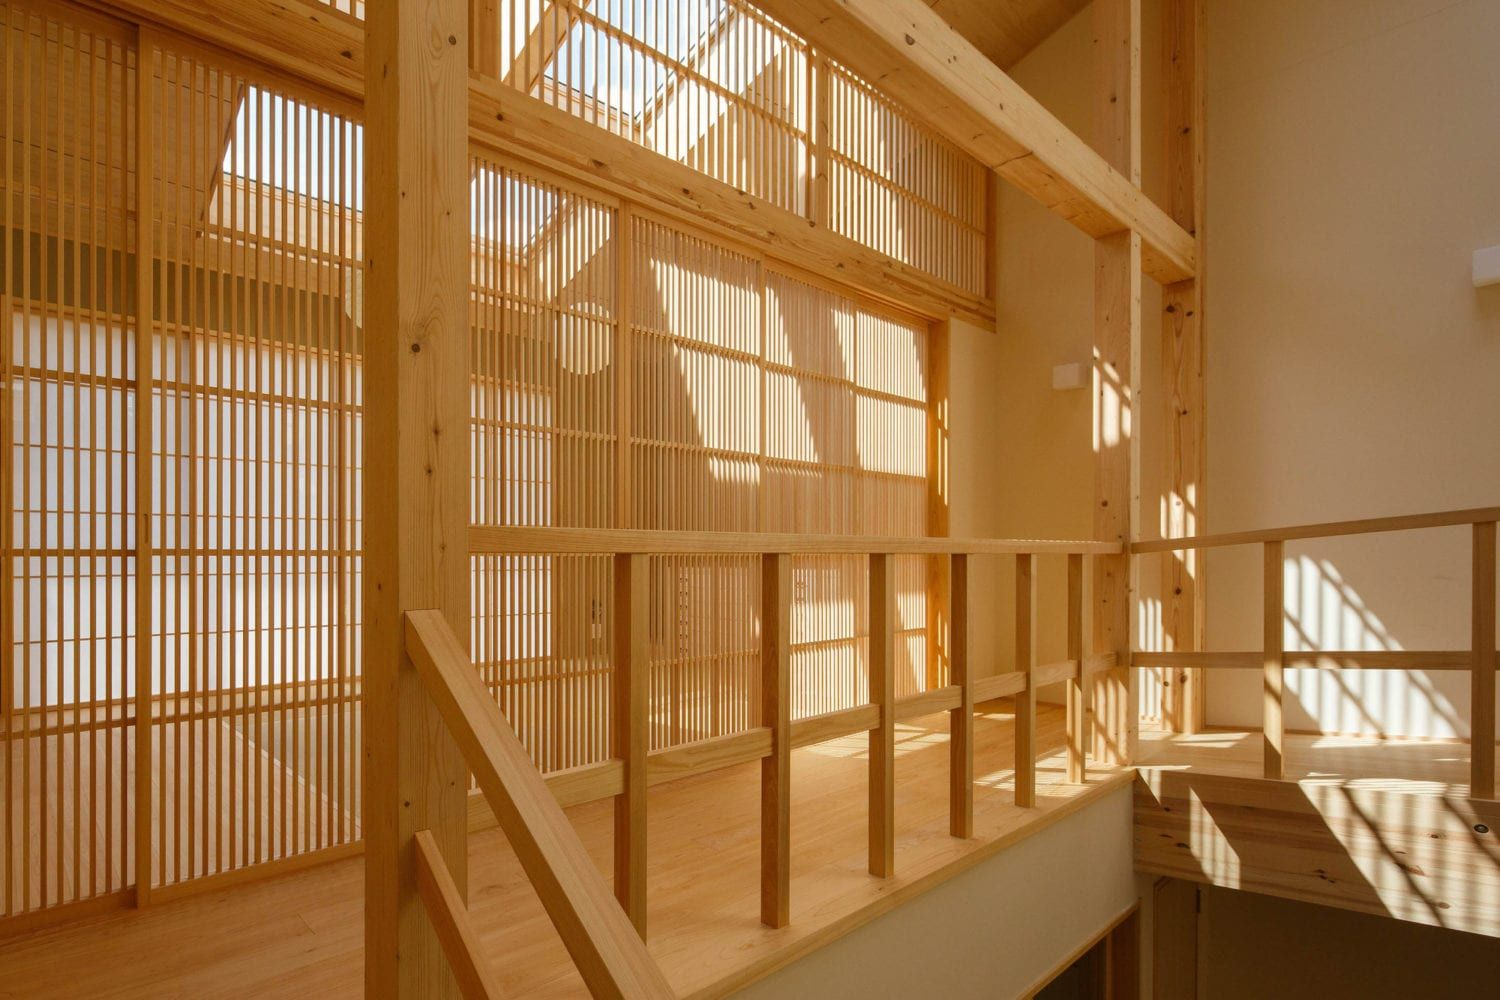 House in kyoto with a central interior garen by 07beach